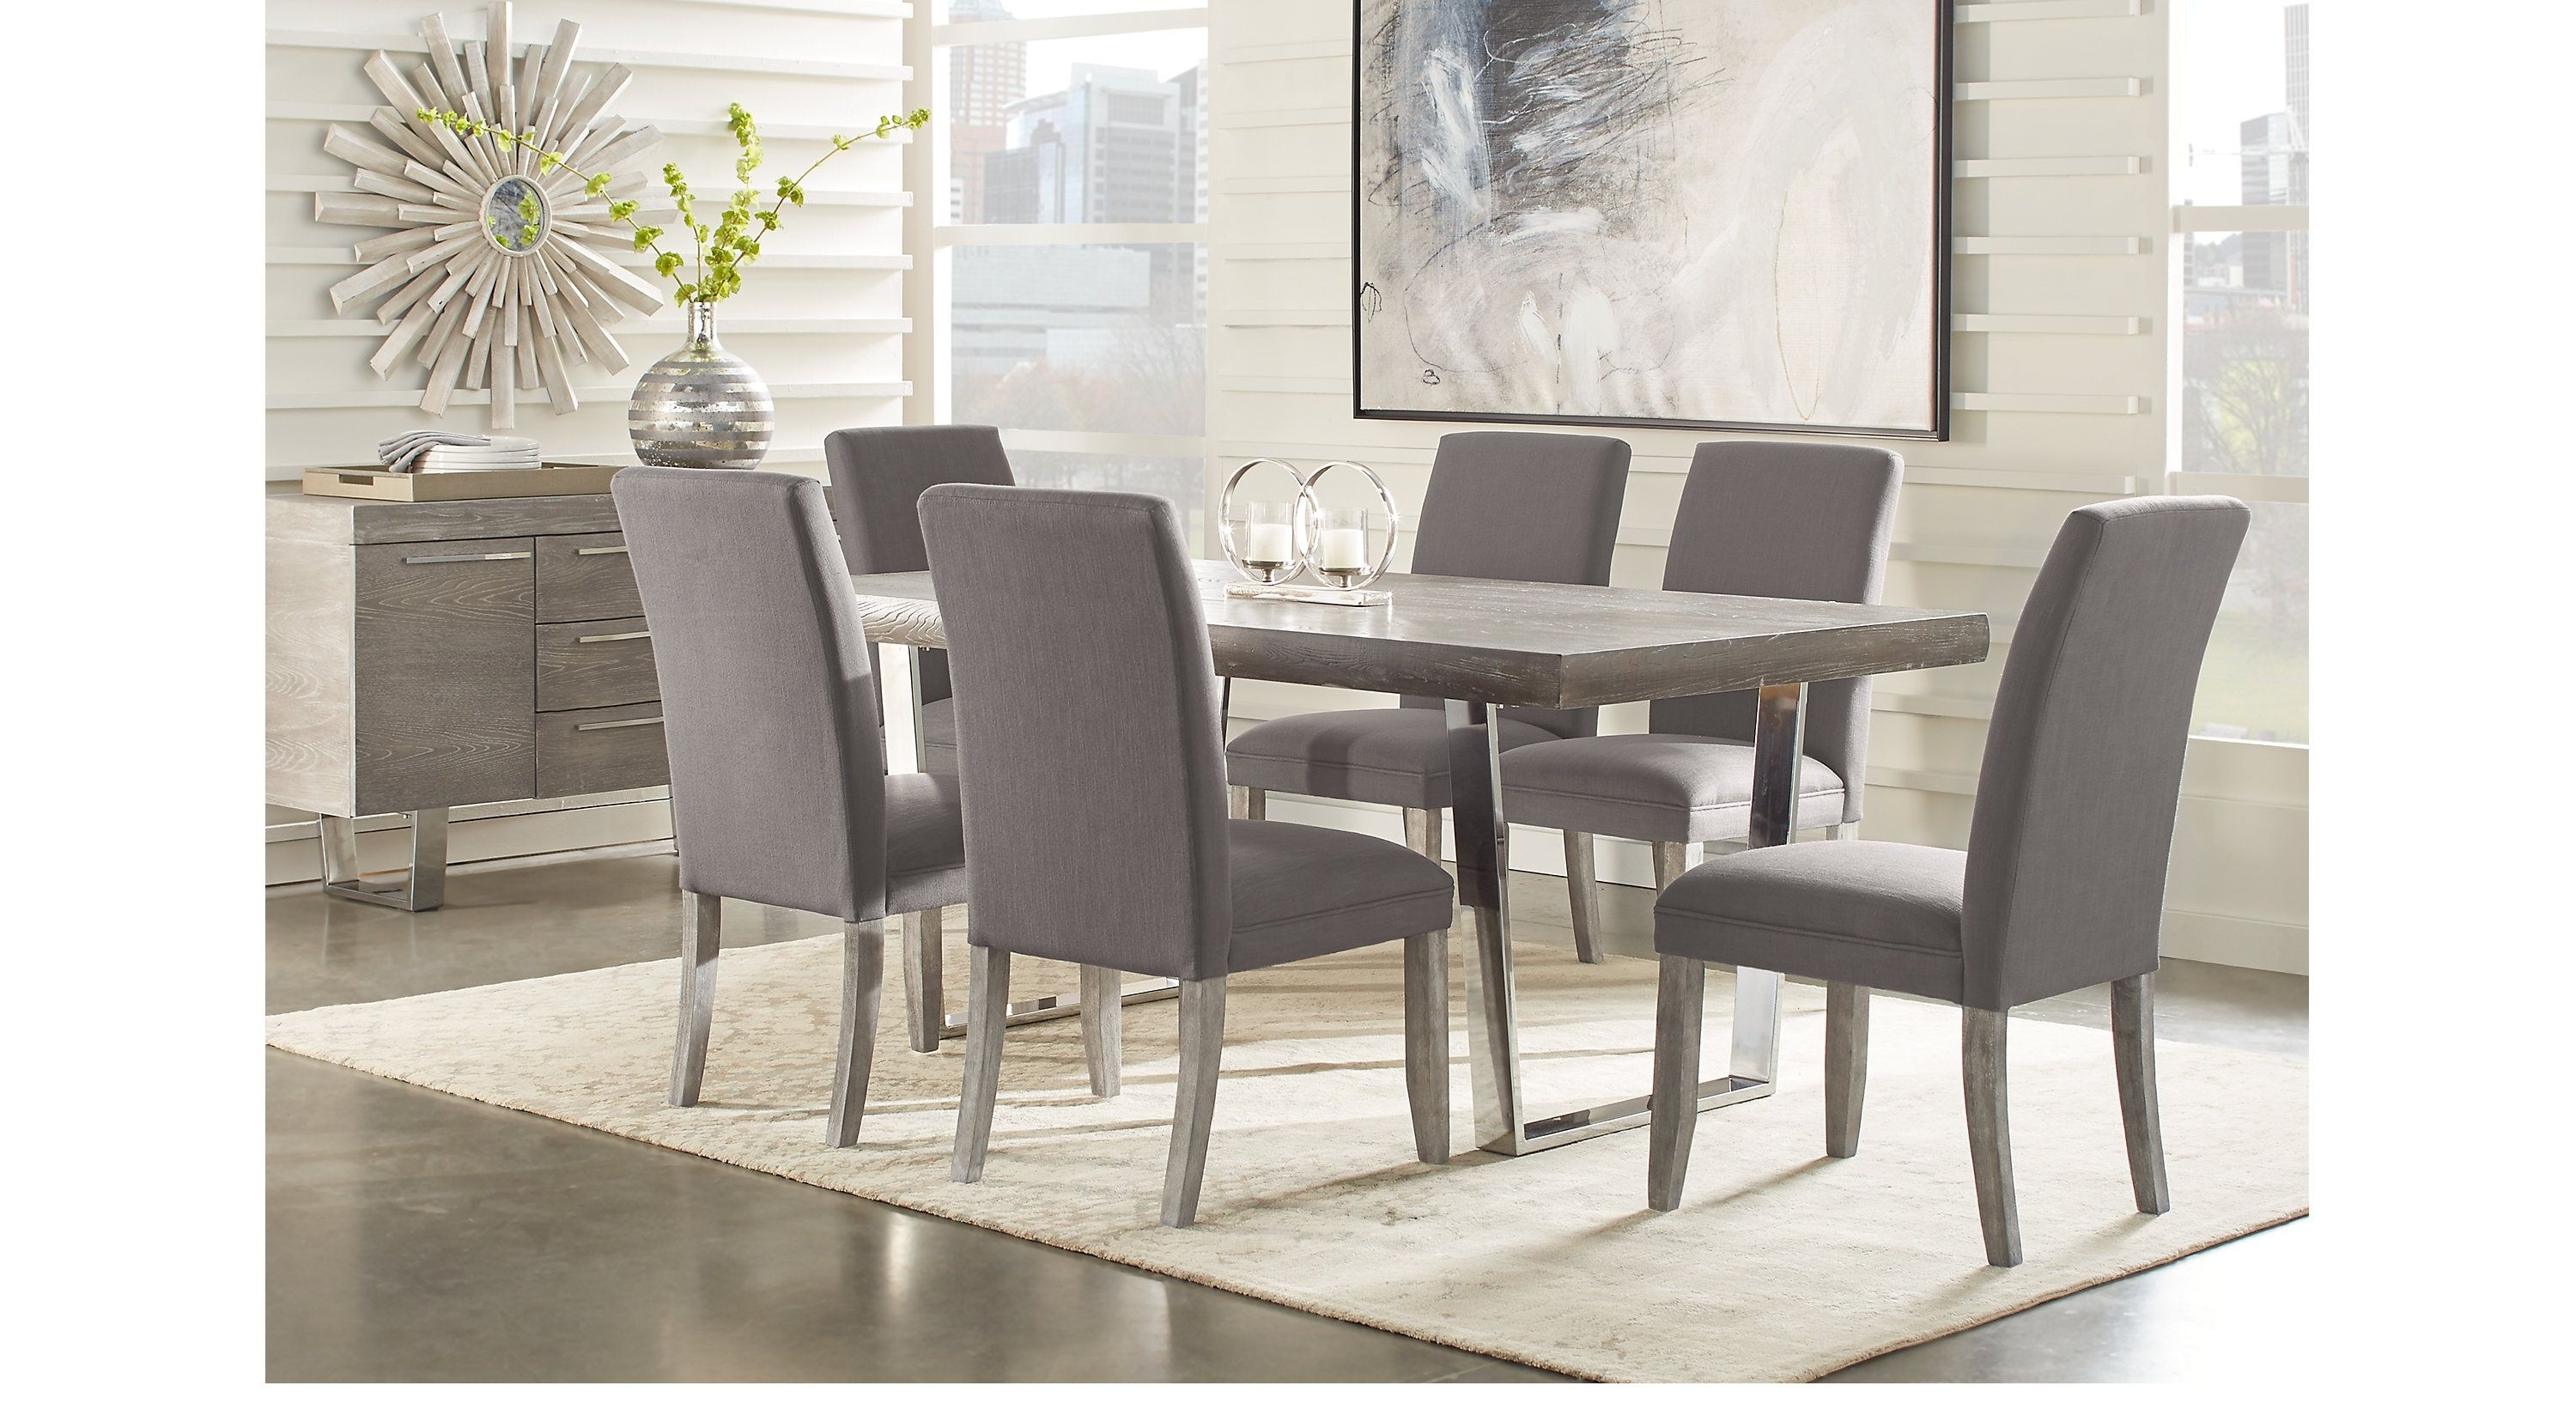 2018 Jaxon Grey 6 Piece Rectangle Extension Dining Sets With Bench & Wood Chairs With Regard To Besteneer Rectangular Dining Room Table Dark Gray – Signat (Gallery 20 of 25)